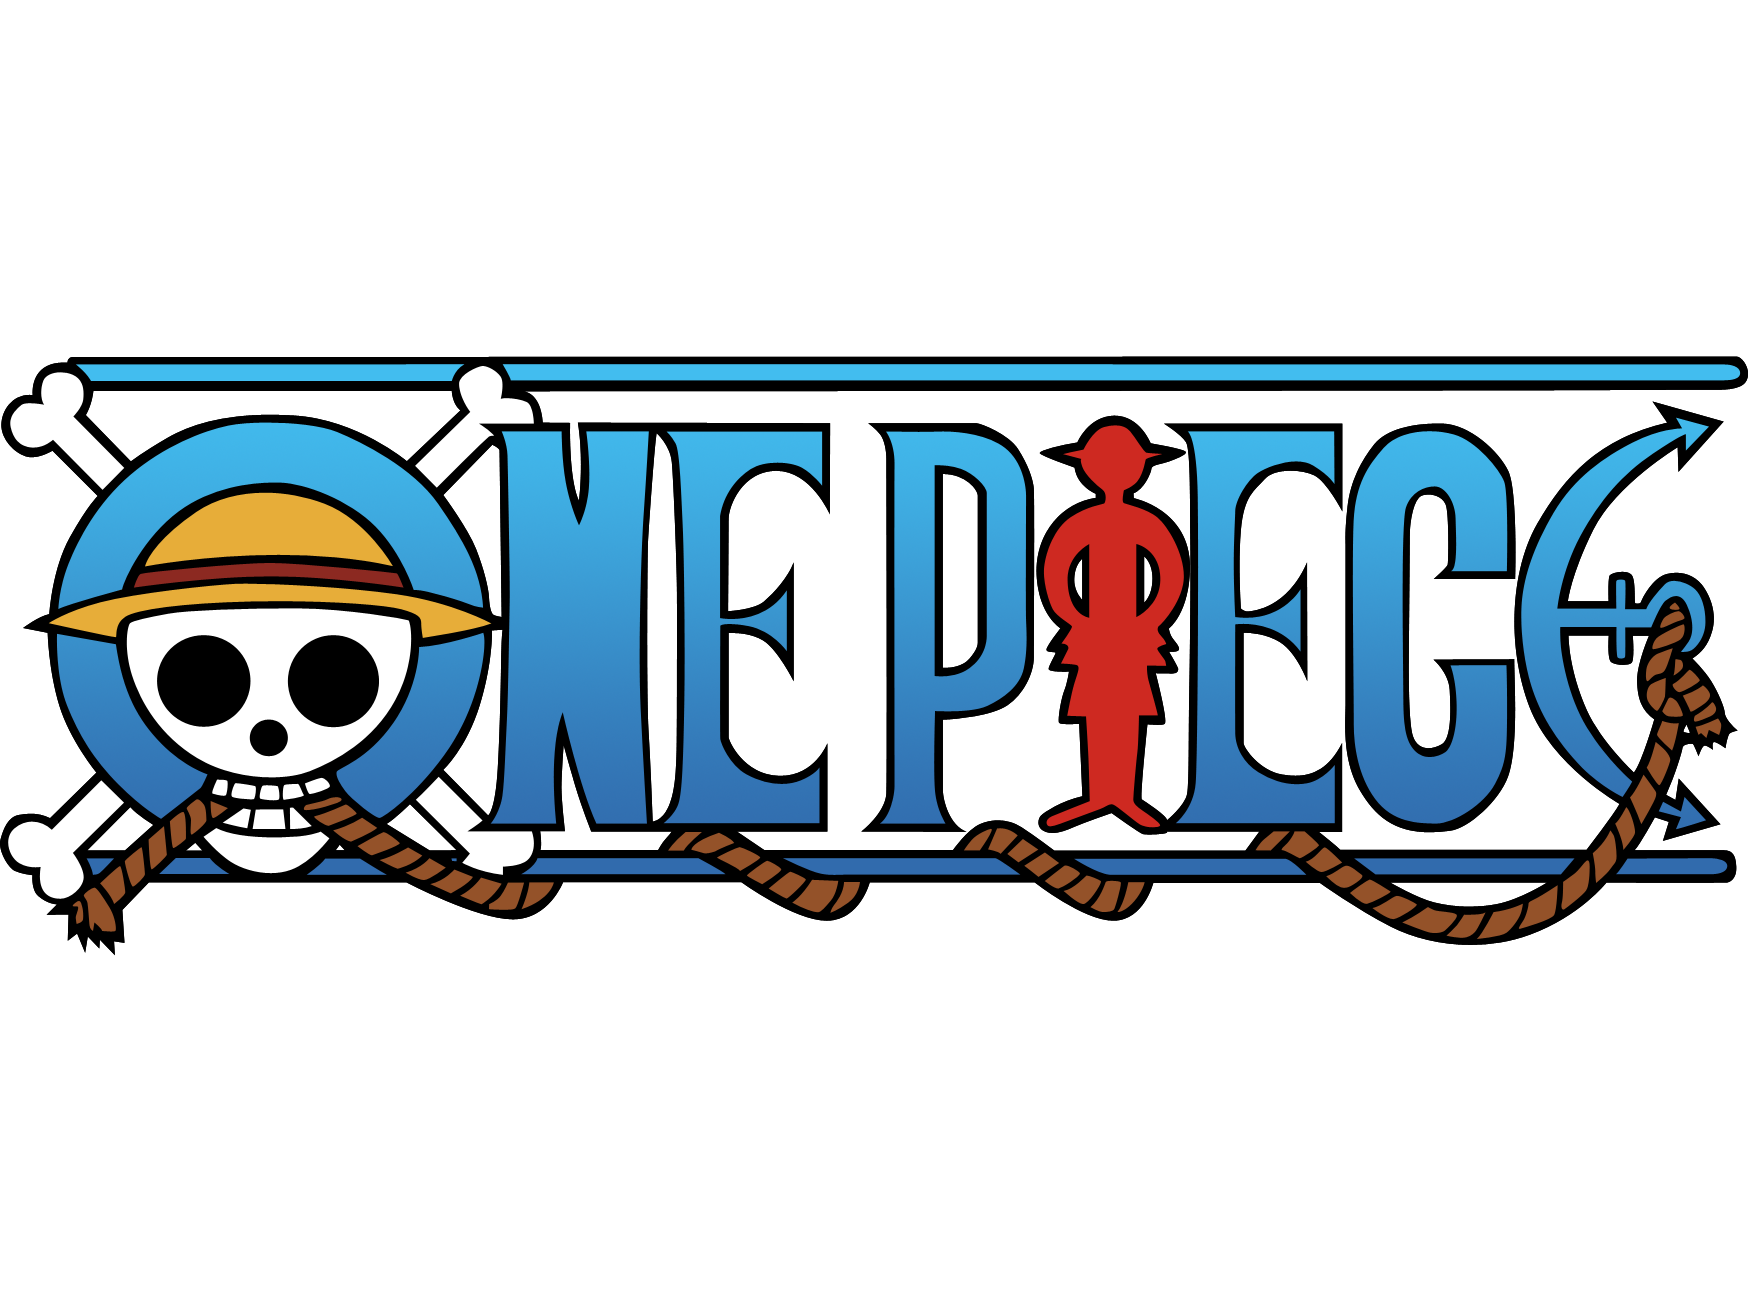 One Piece Logo Png.